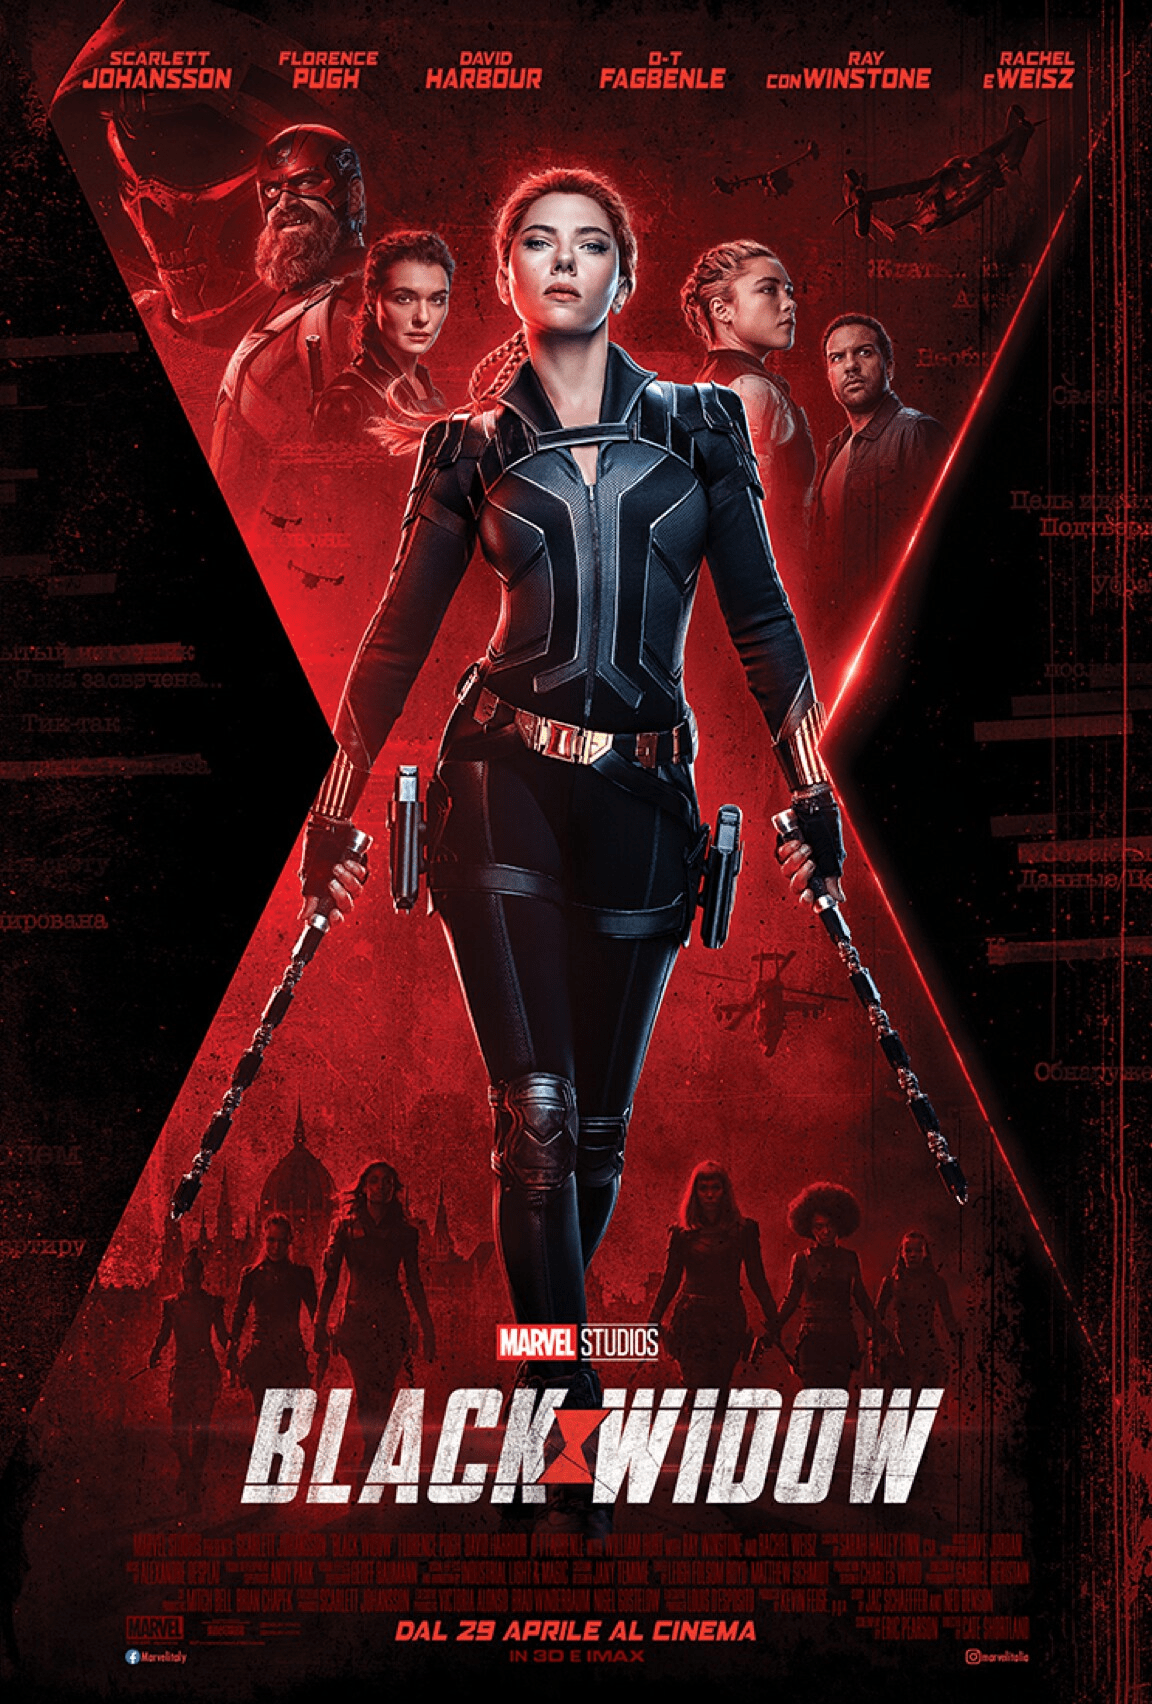 Black Widow trailer finale poster